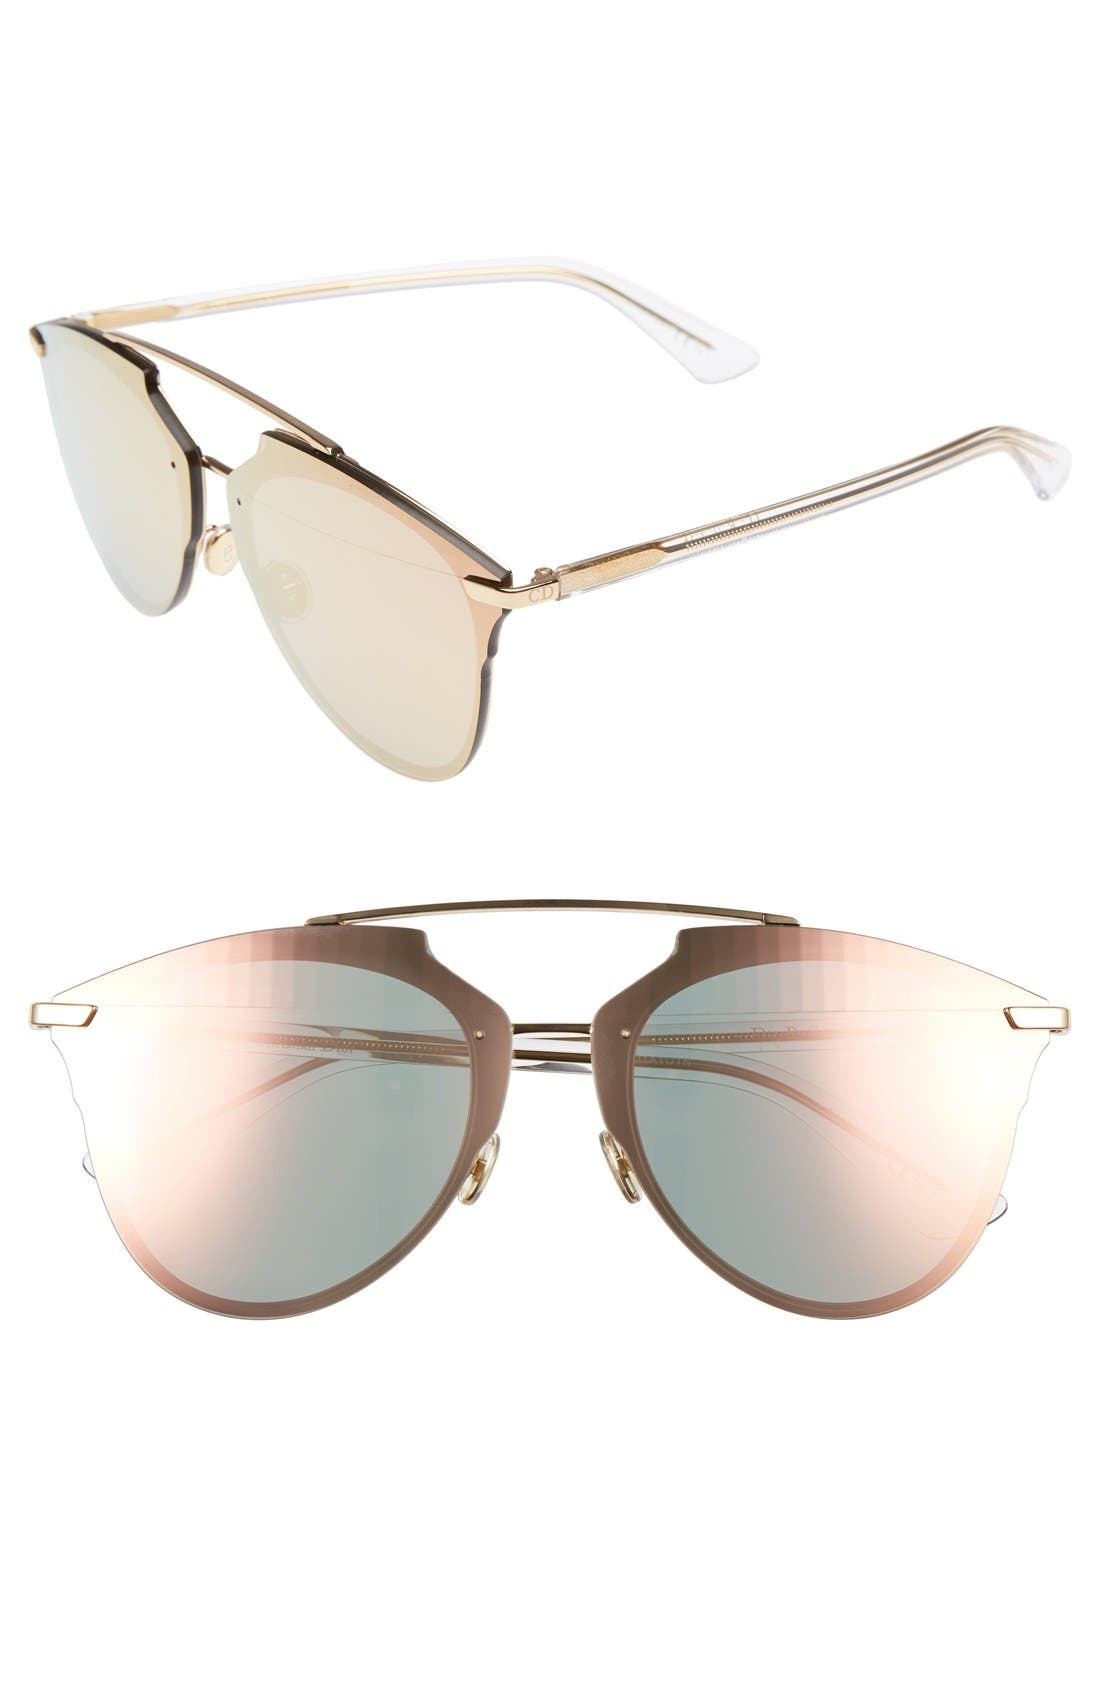 ,                             Reflected Prism 63mm Oversize Mirrored Brow Bar Sunglasses,                             Main thumbnail 21, color,                             710